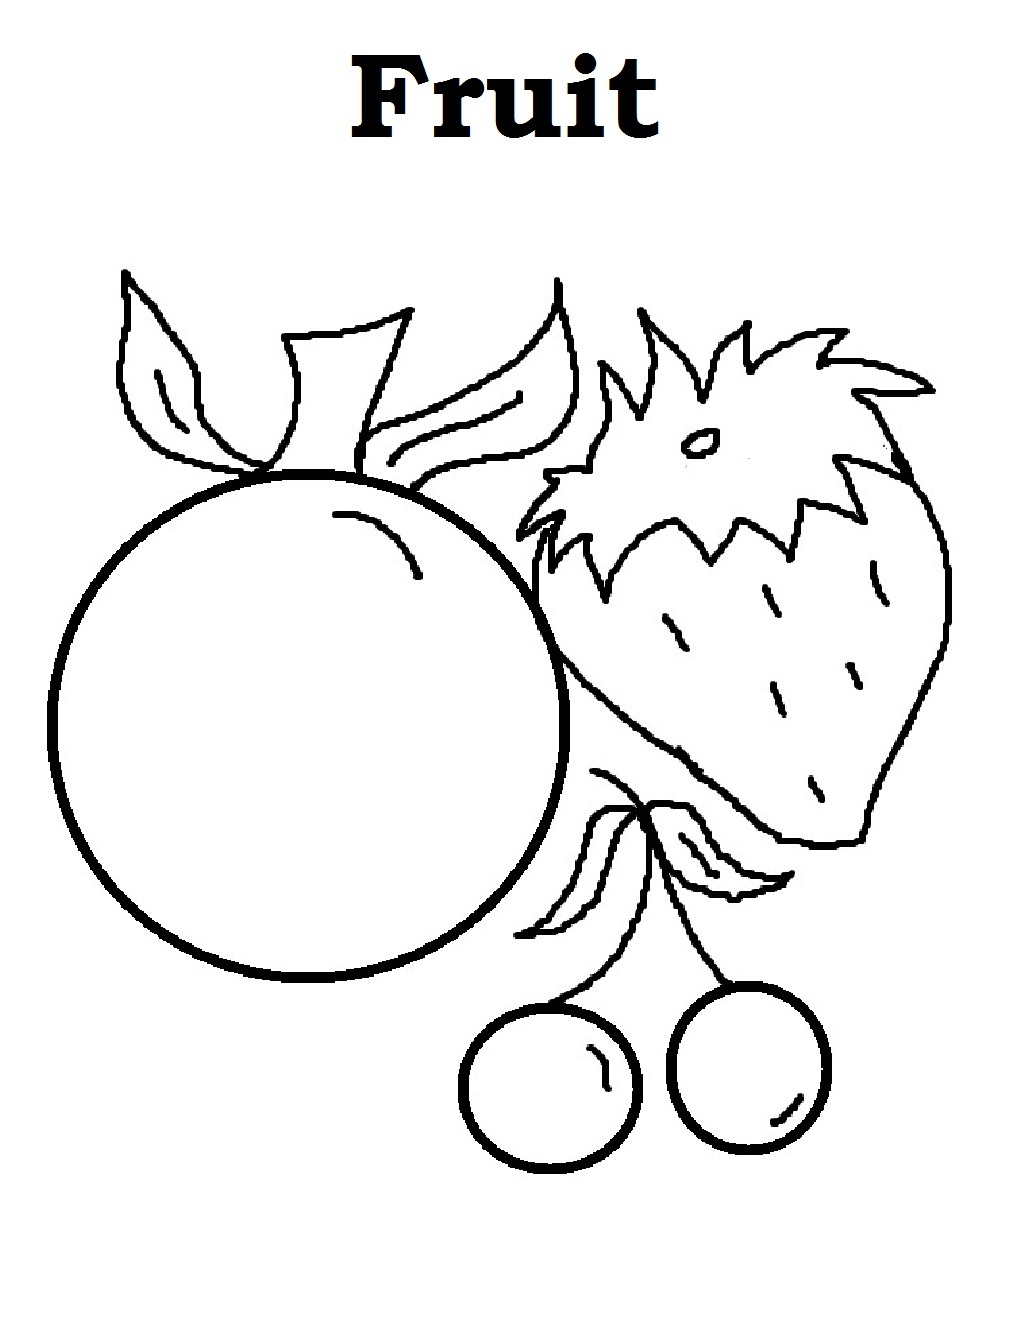 Free Printable Fruit Coloring Pages For Kids